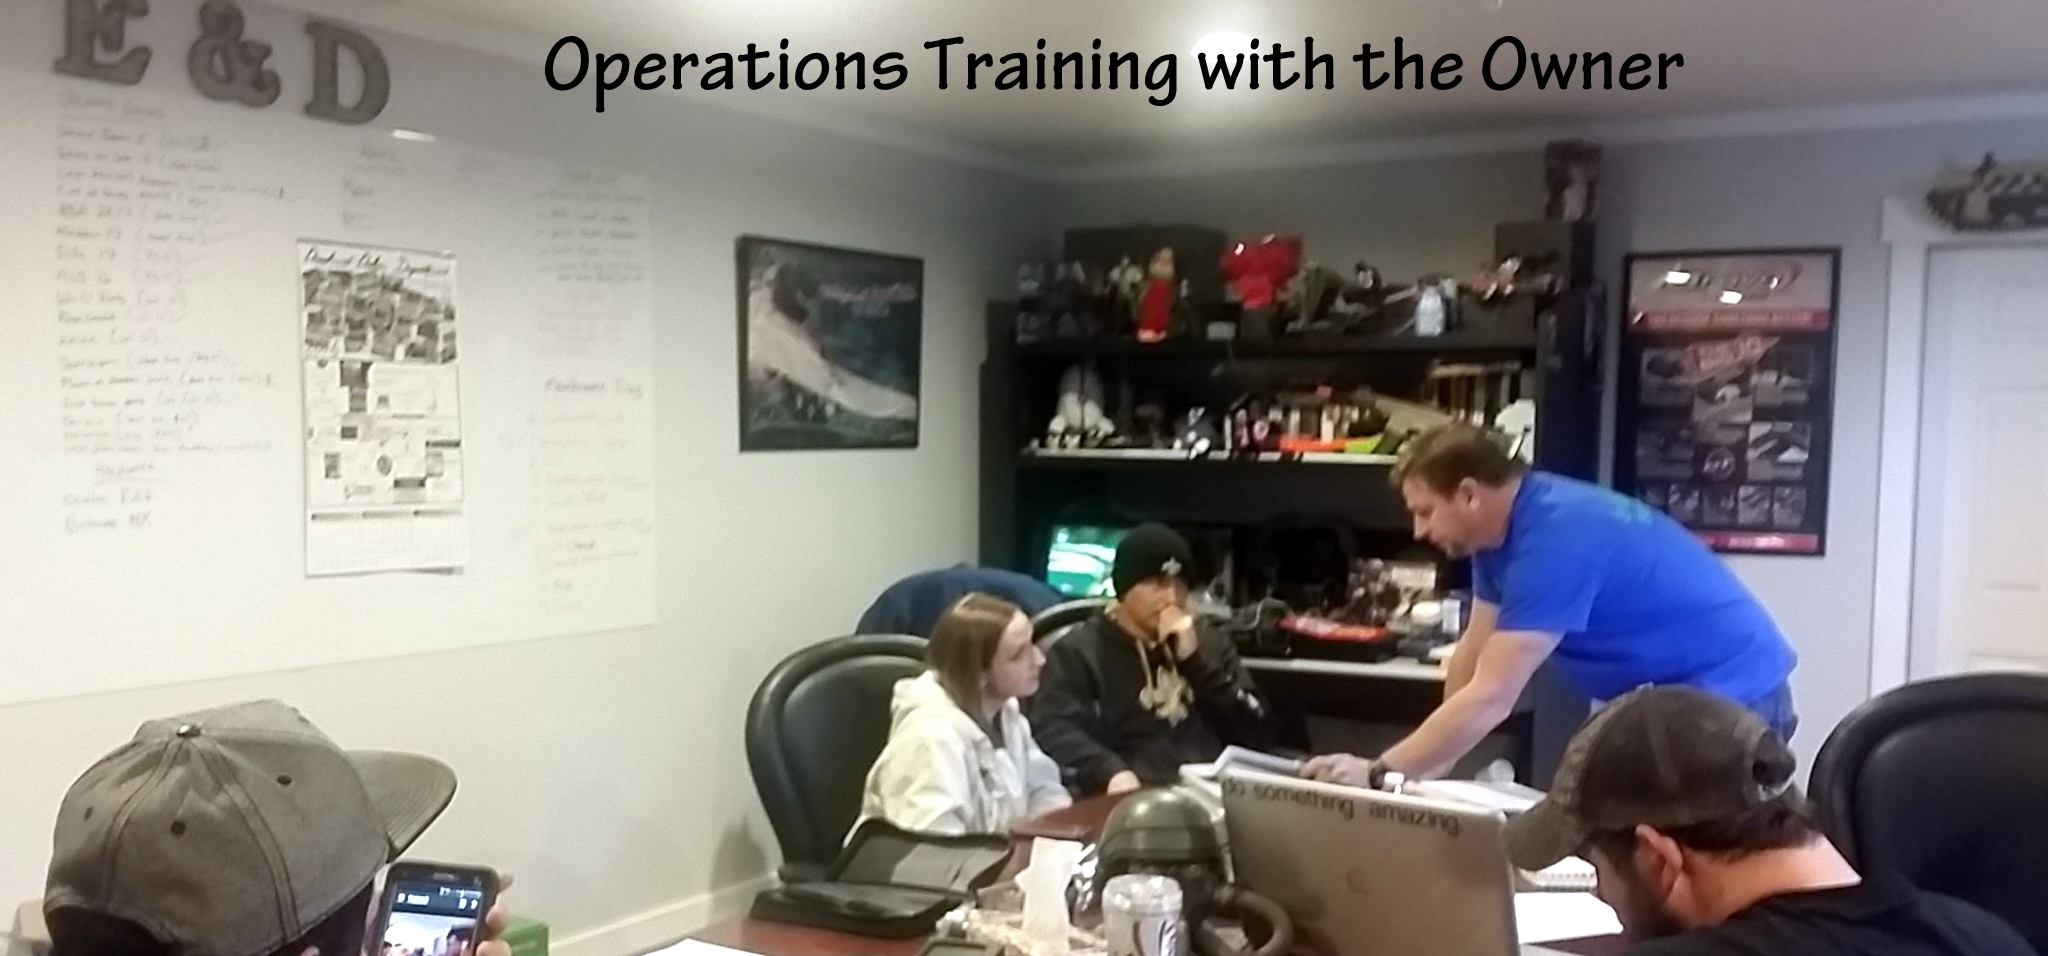 Training Day for On Sight Entertainment Operations